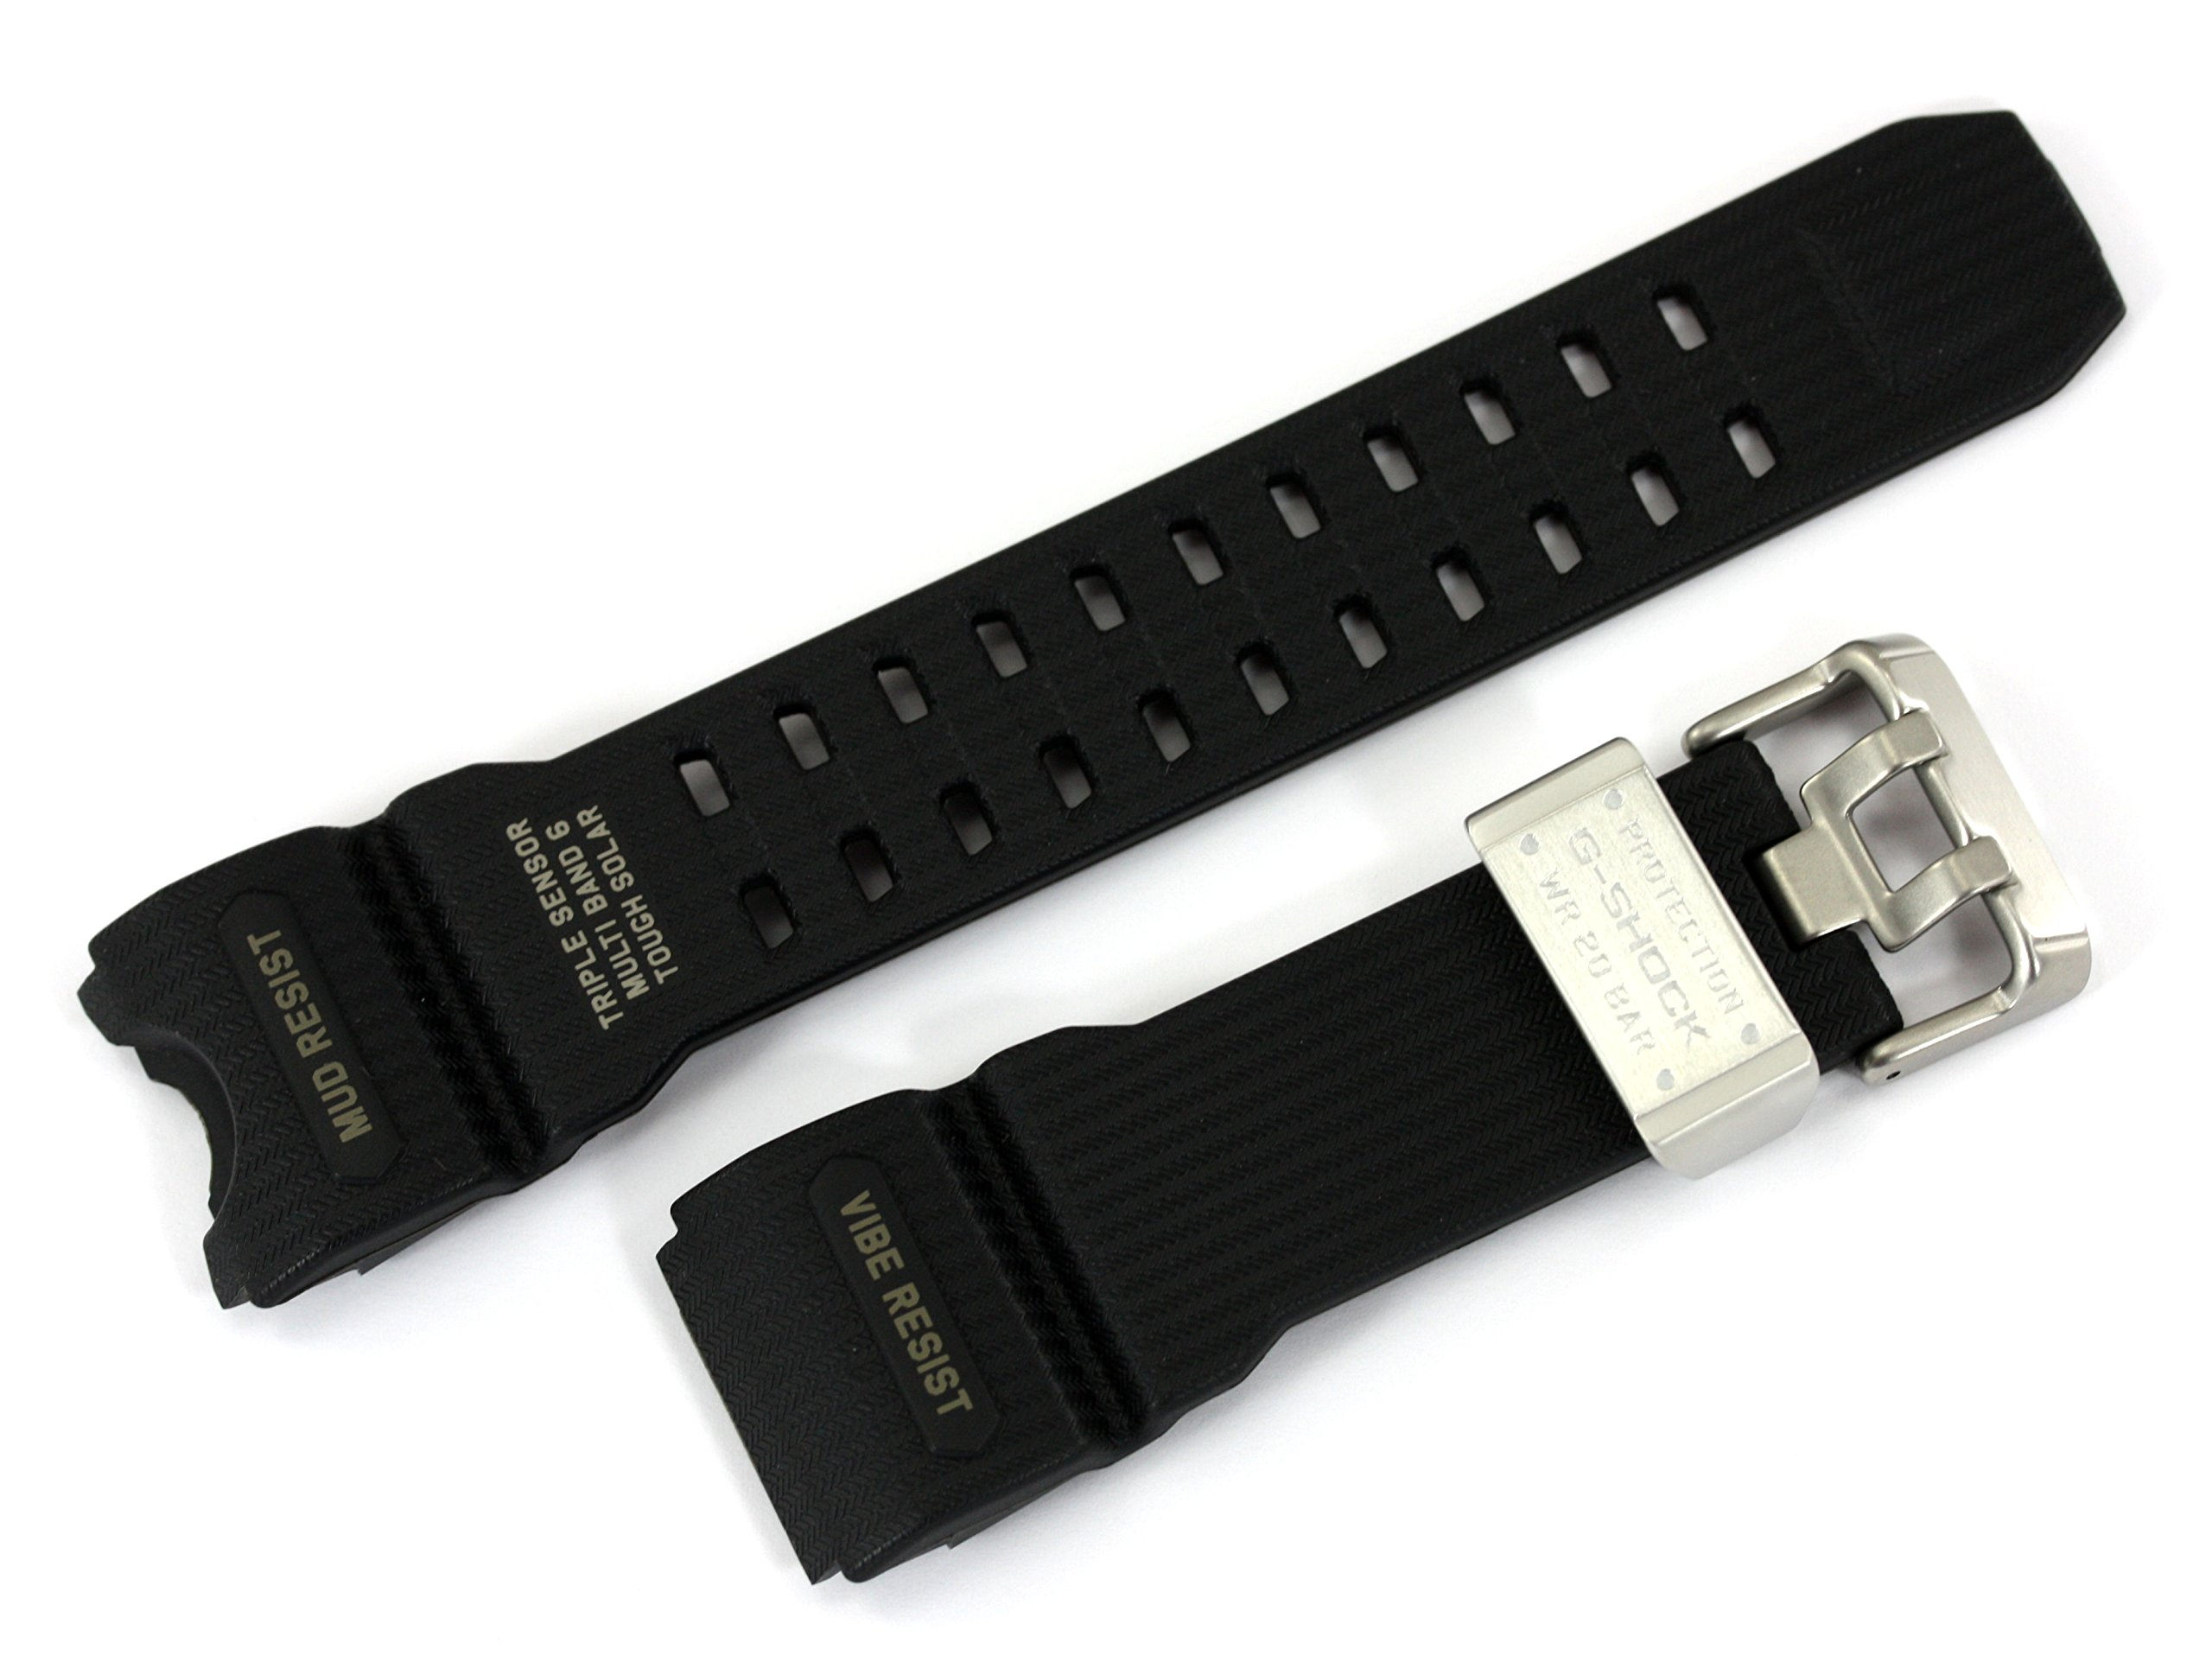 Casio 10504384 Genuine Factory Replacement Resin Watch Band fits GWG-1000-1A